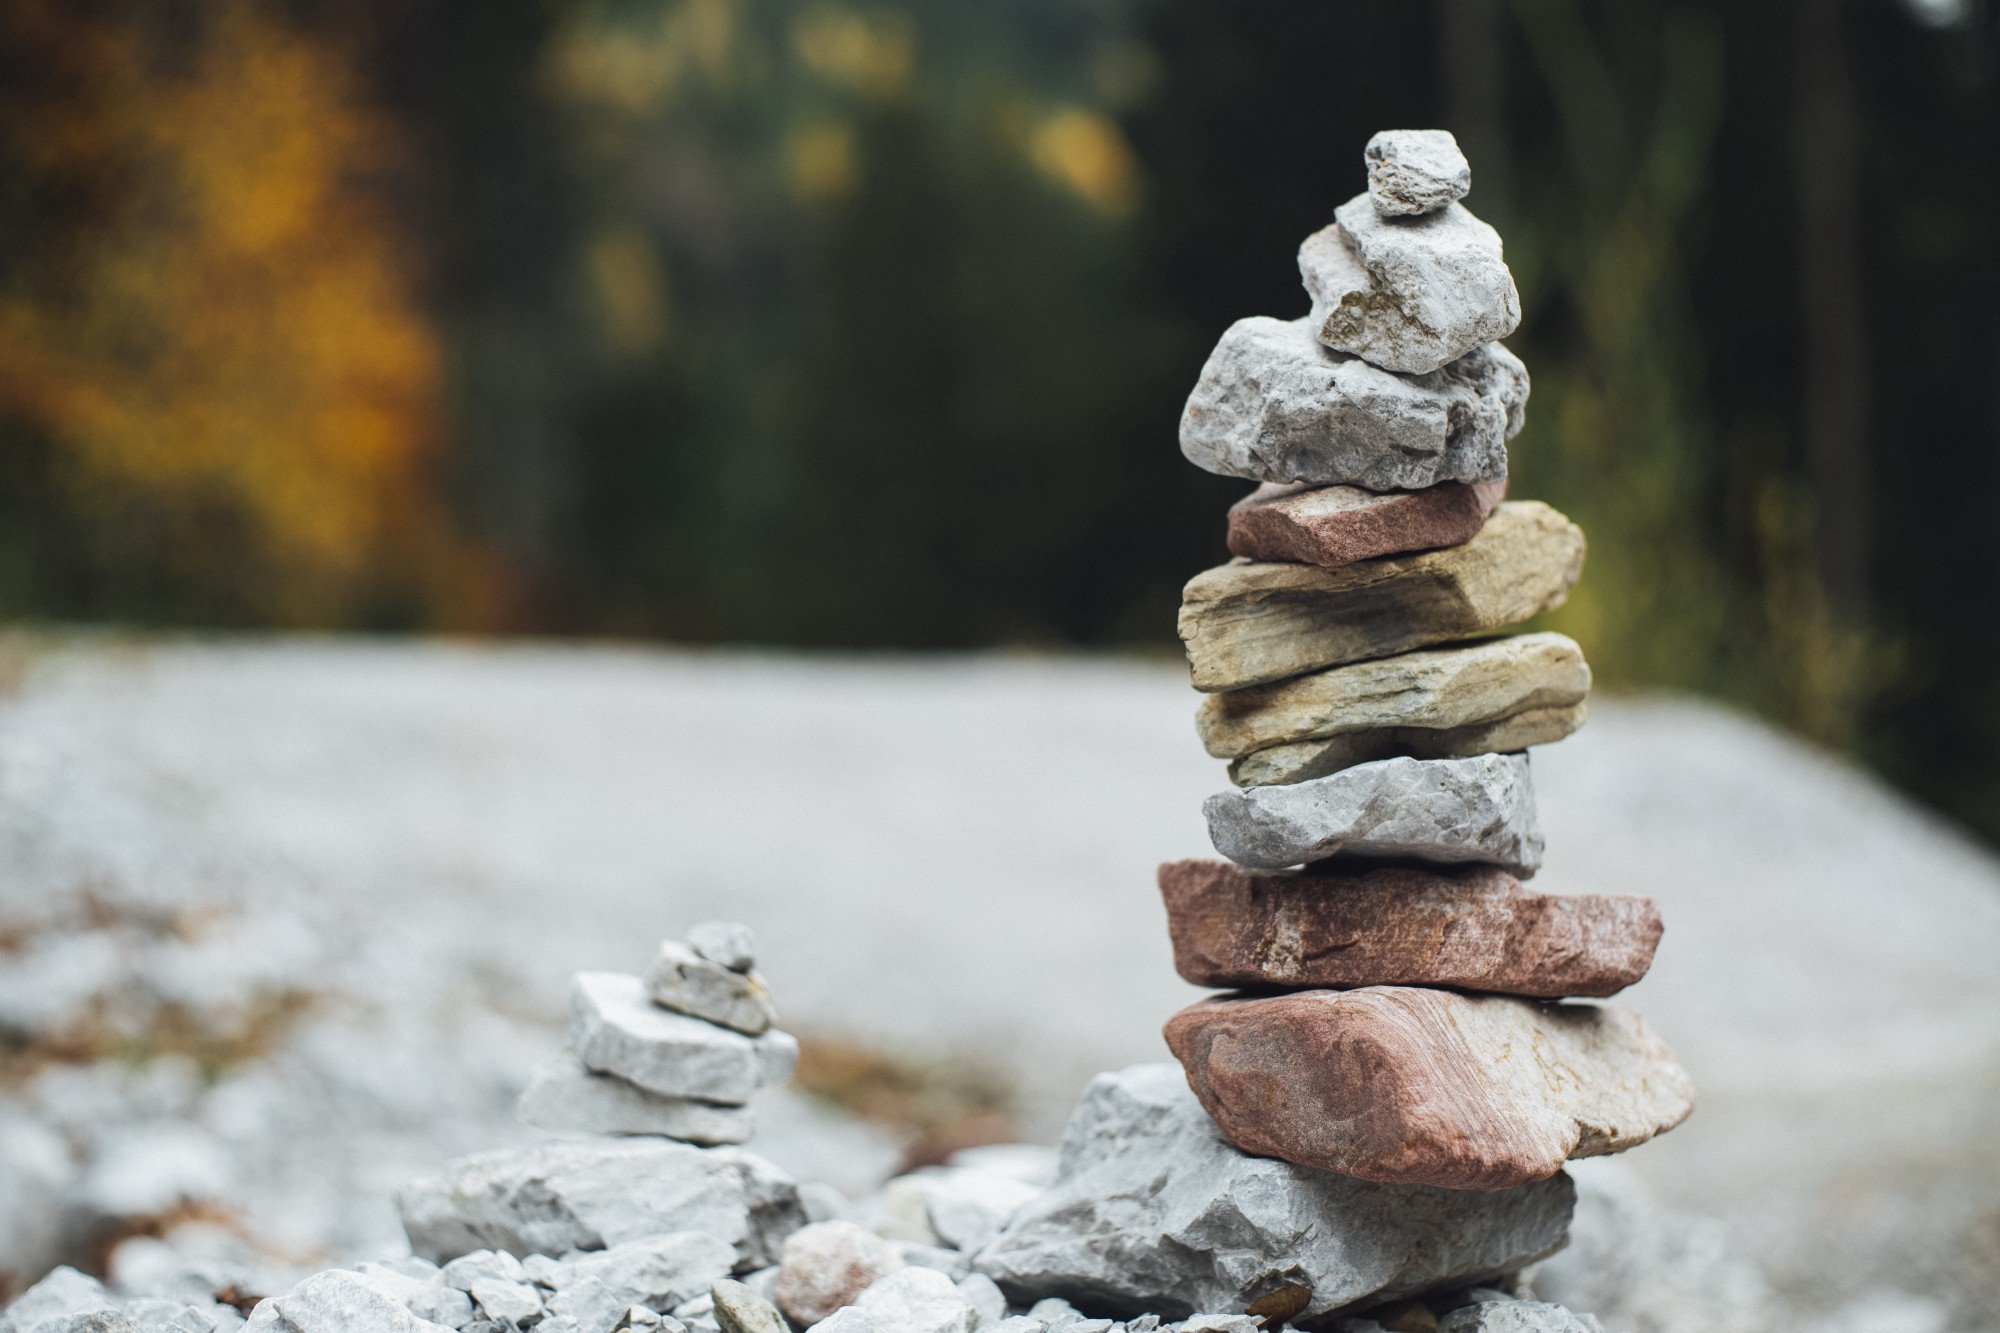 A set of rocks, piled on top of each other.